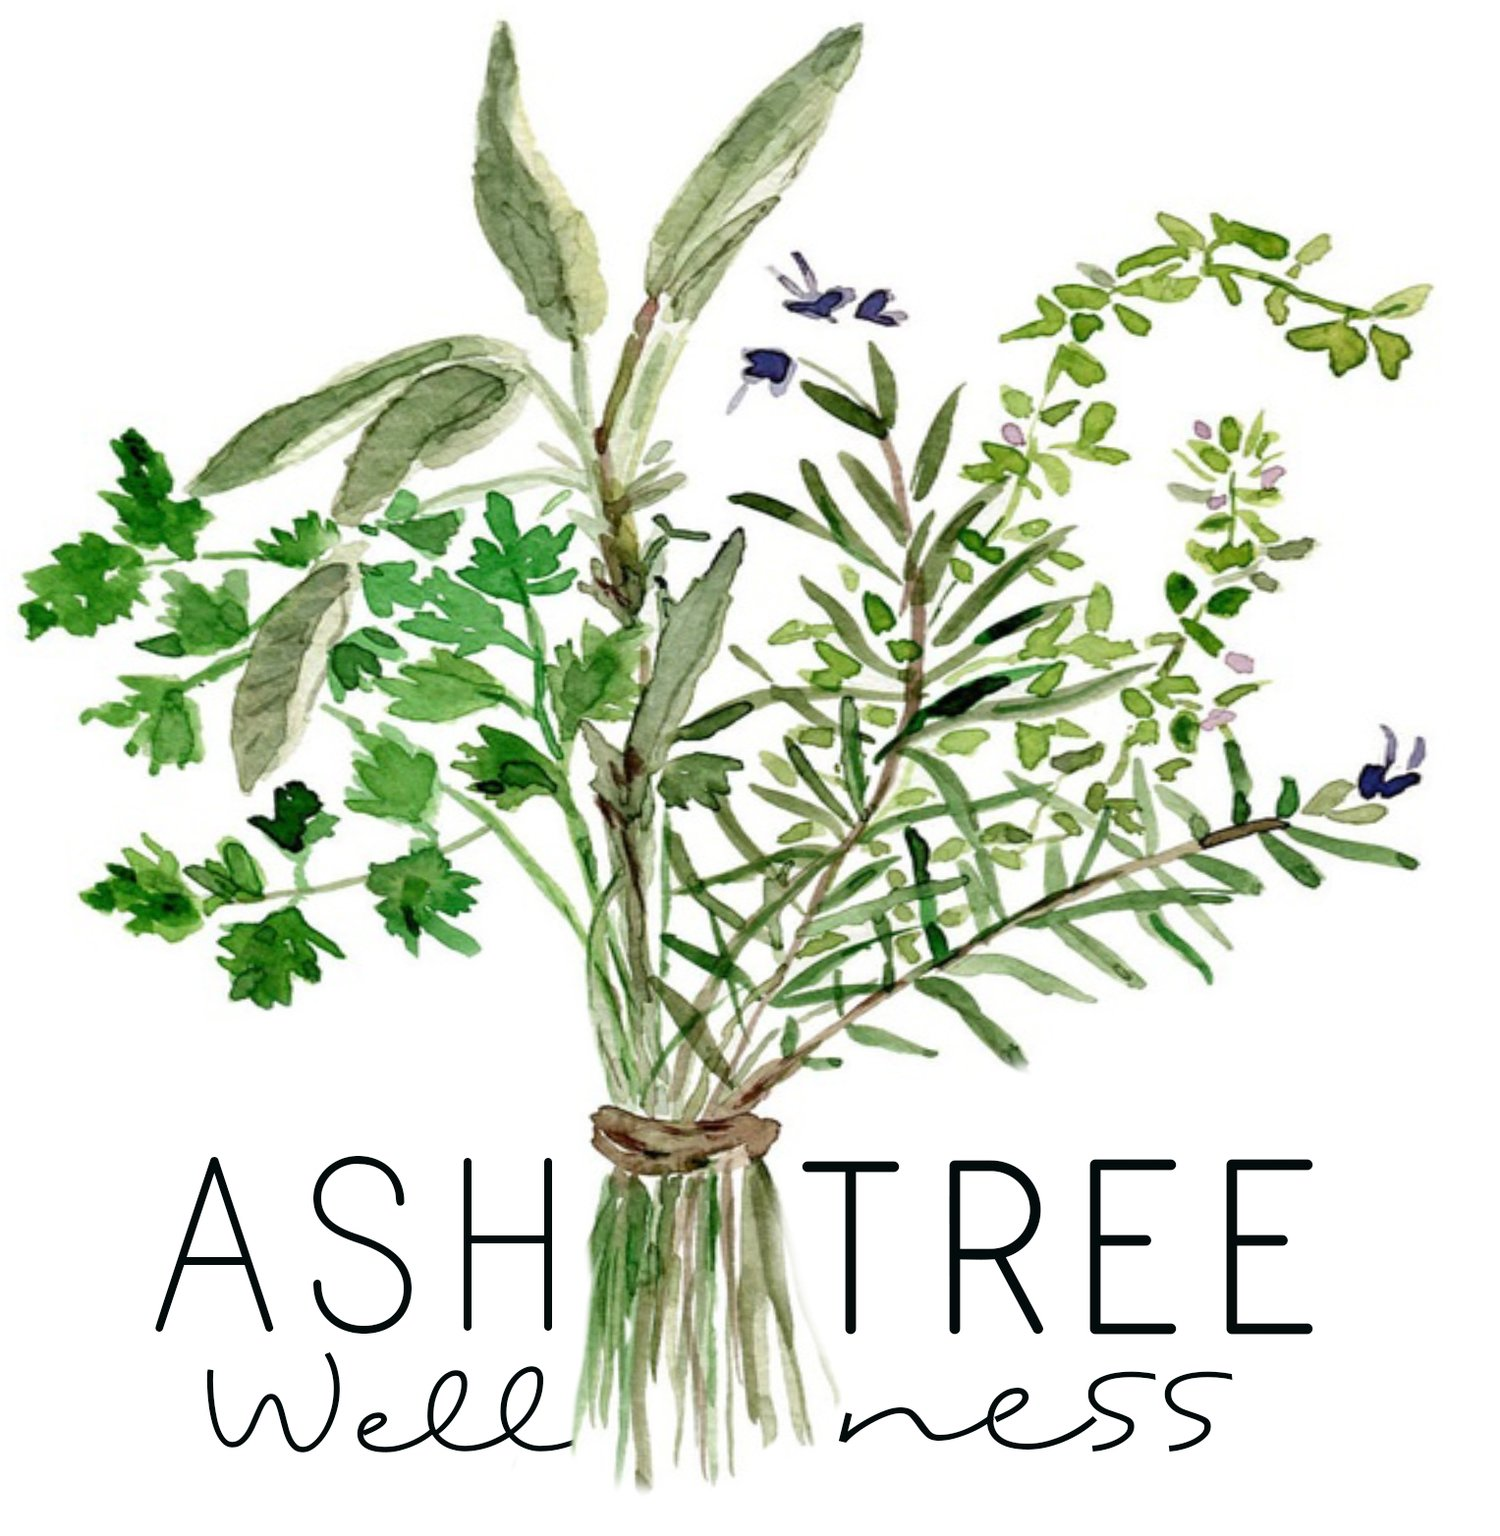 AshTree Wellness